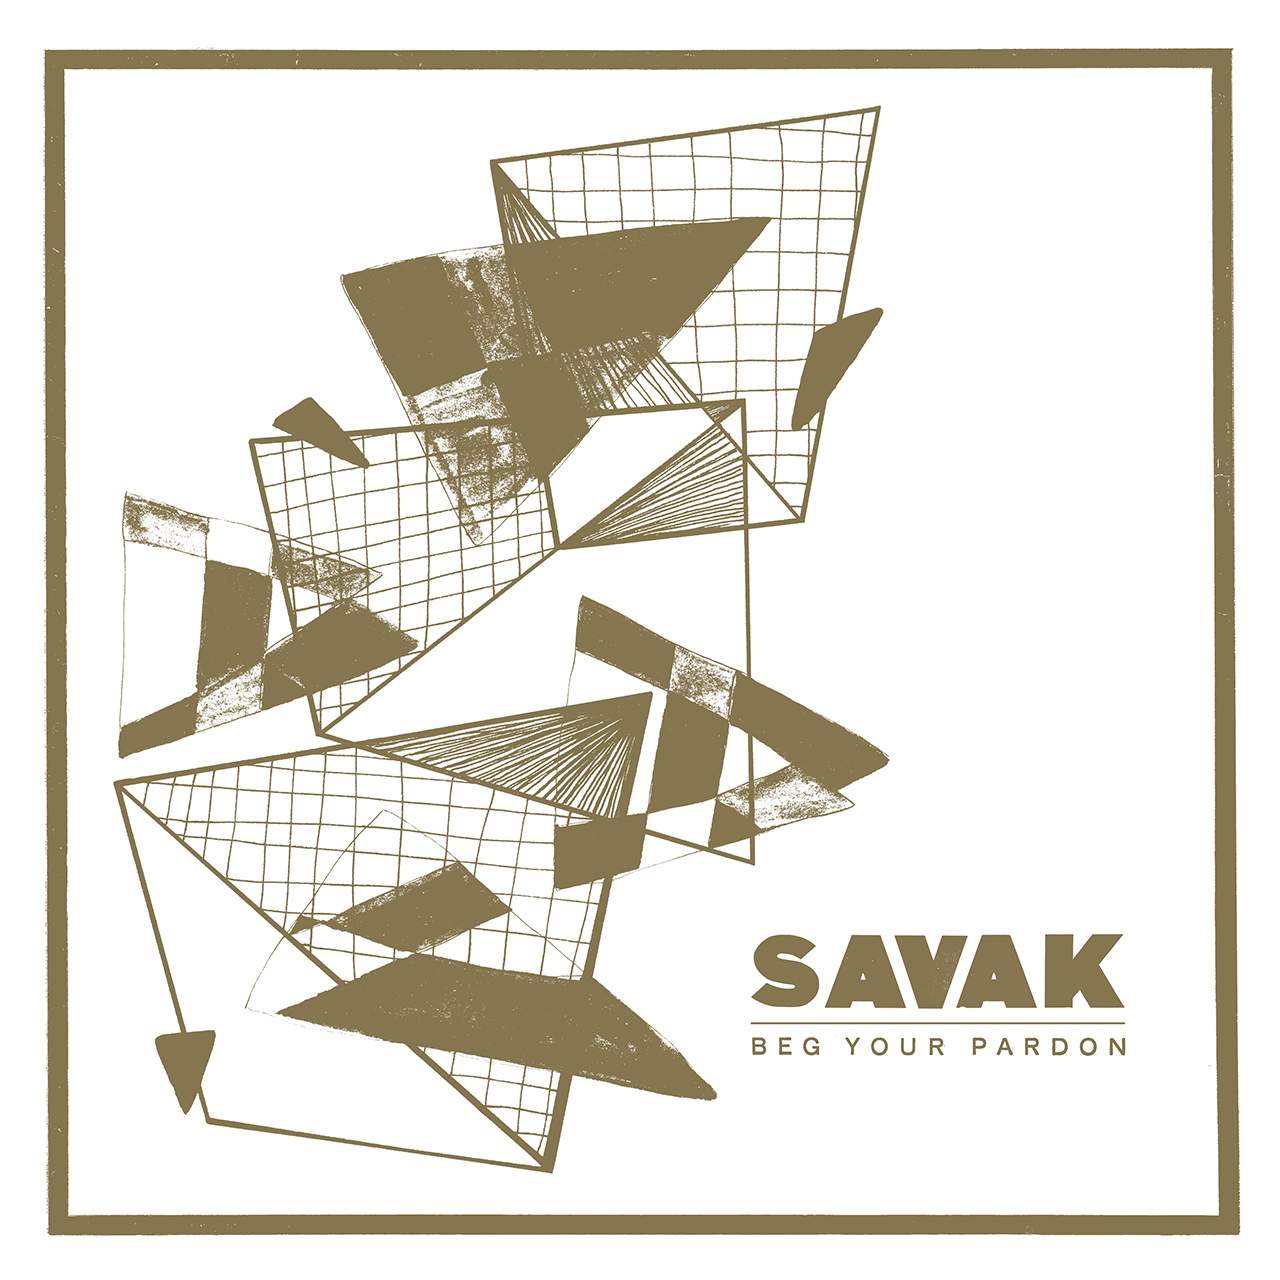 SAVAK - Beg Your Pardon